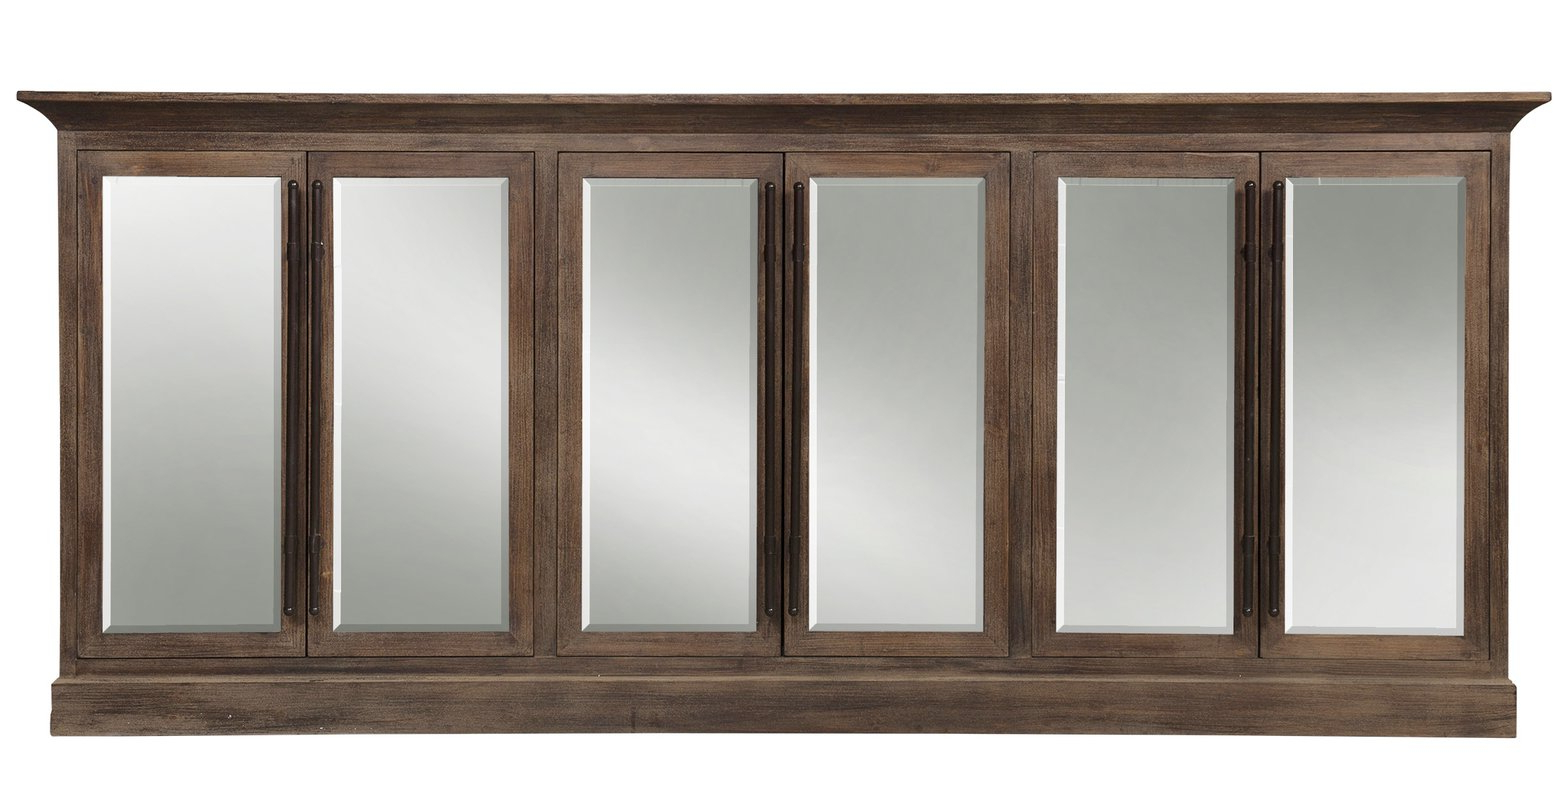 2020 Big Save Foundry Select Offer Currahee 6 Door Sideboard *wow* Regarding Sideboards By Foundry Select (Gallery 6 of 20)